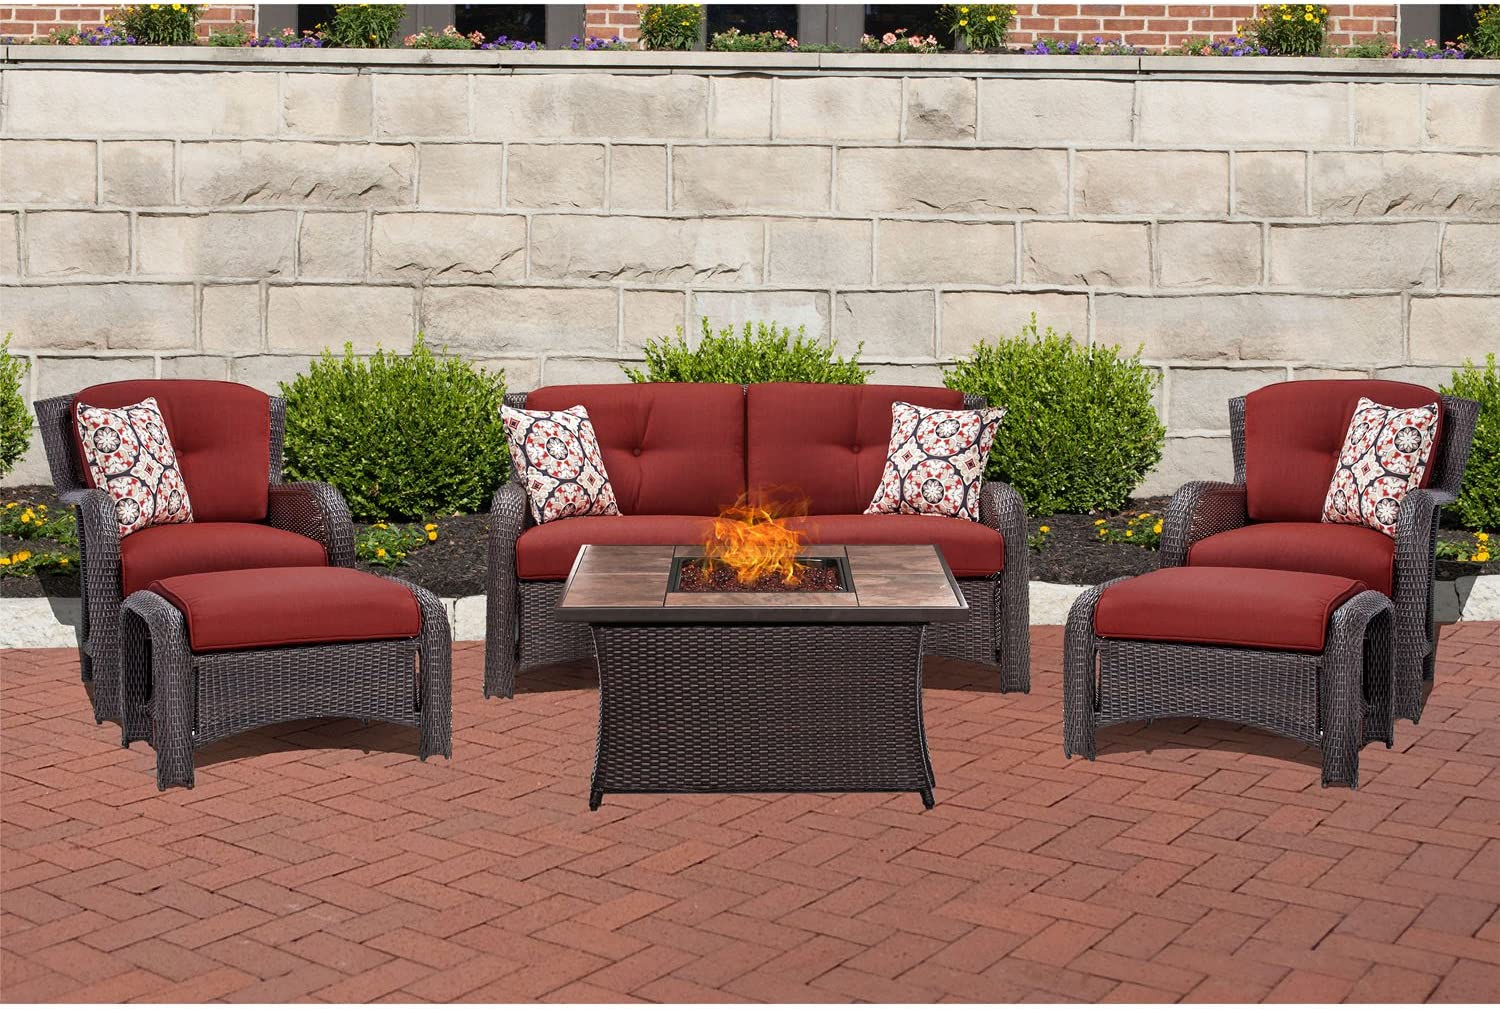 Hanover STRATH6PCFP-RED-TN 6 Piece Strathmere Lounge Set Table Outdoor Furniture, Crimson Red with Stone Top Fire Pit